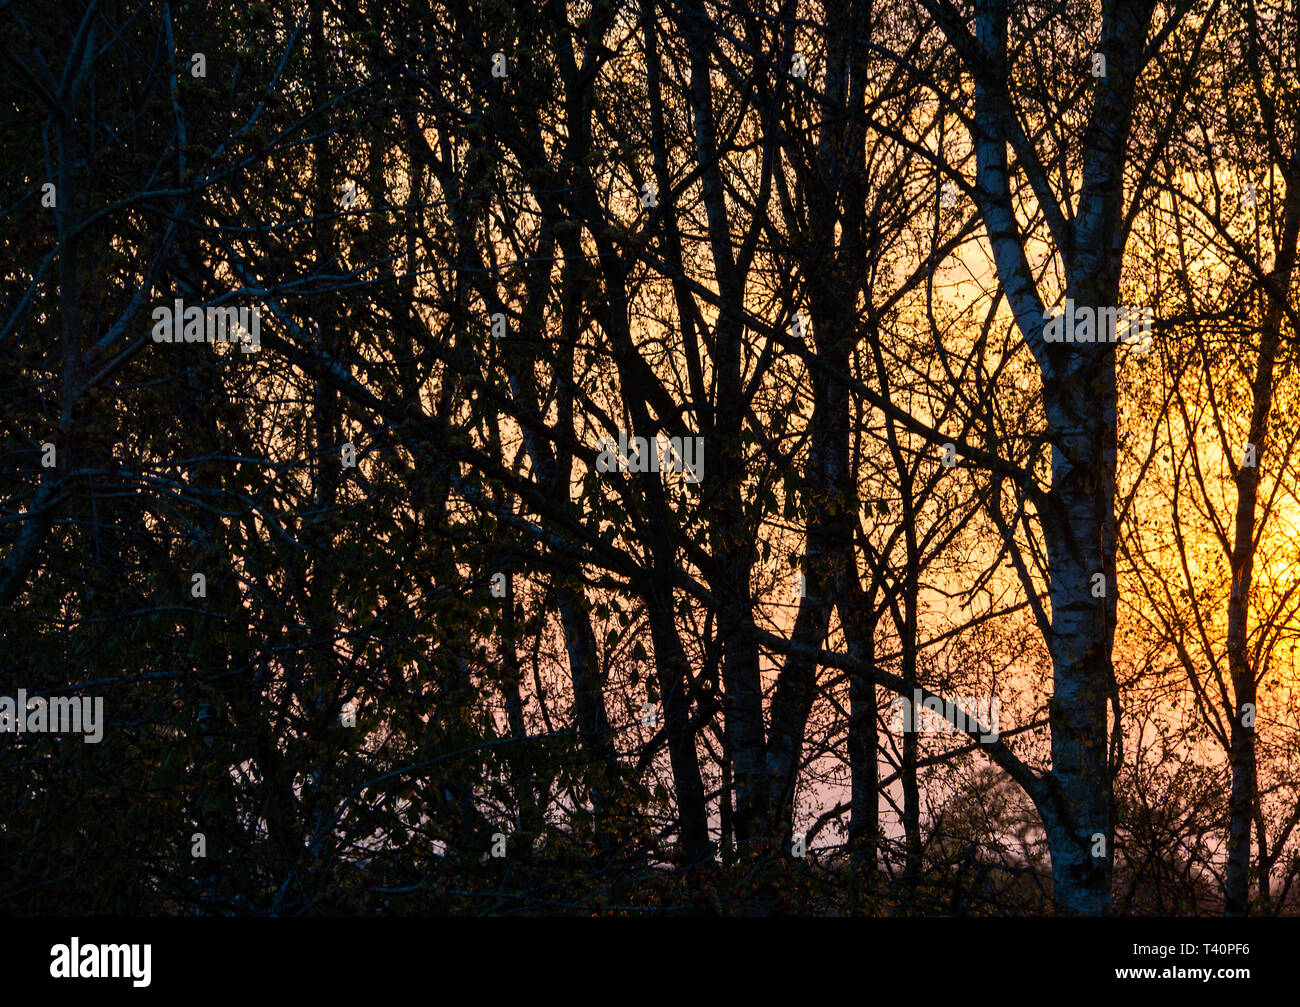 A Beautiful Red Sun Setting Behind Silver Birch Trees in a Garden in Alsager Cheshire England United Kingdom UK - Stock Image